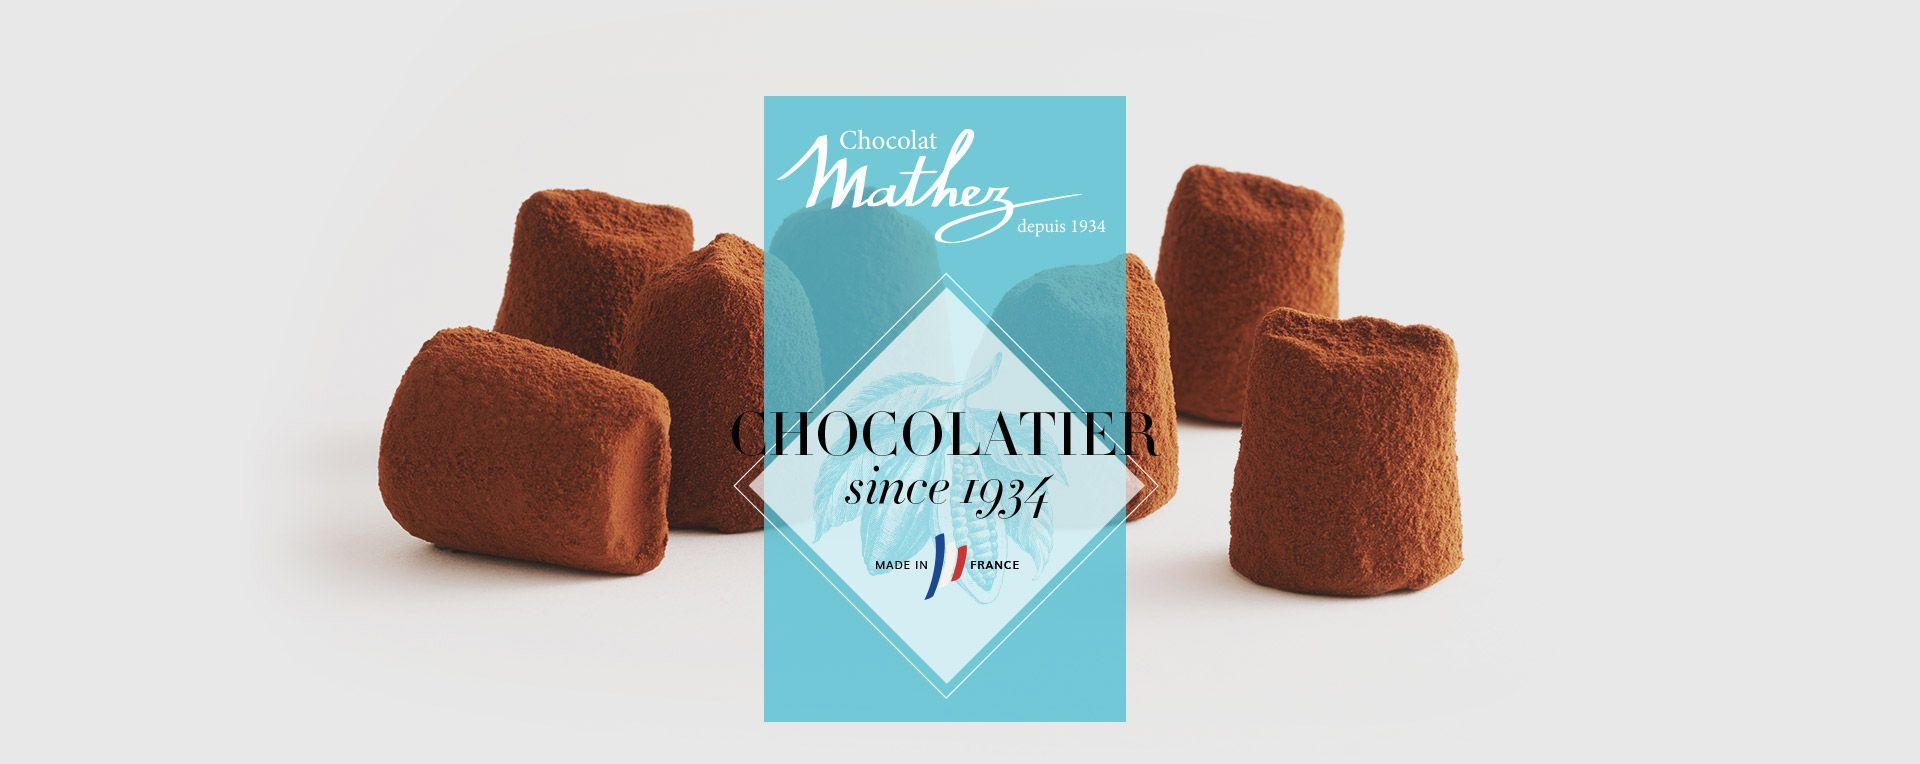 Mathez : French cocoa truffles manufacturer since 1934